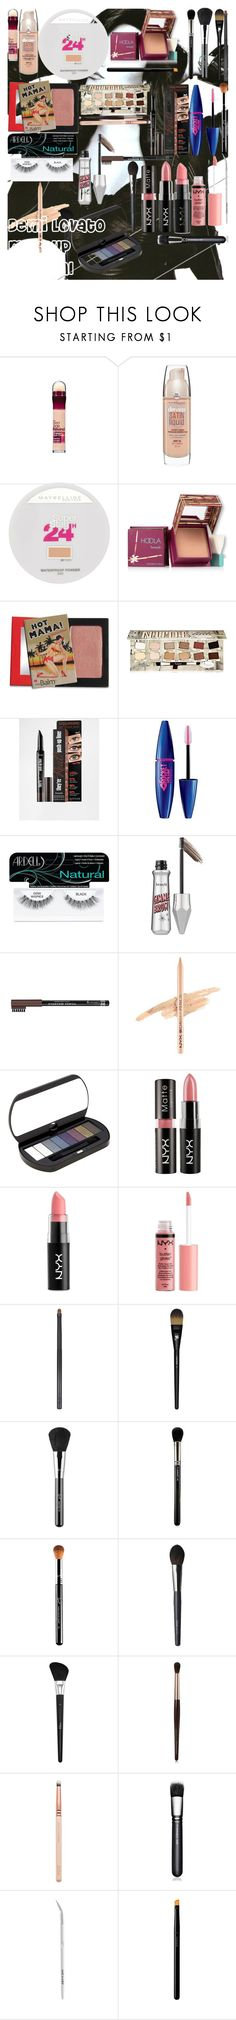 """""""Demi Lovato Makeup Tutorial"""" by oroartye-1 on Polyvore featuring beauty, Maybelline, Hoola, TheBalm, Benefit, Ardell, Rimmel, NYX, Bourjois and Forever 21"""